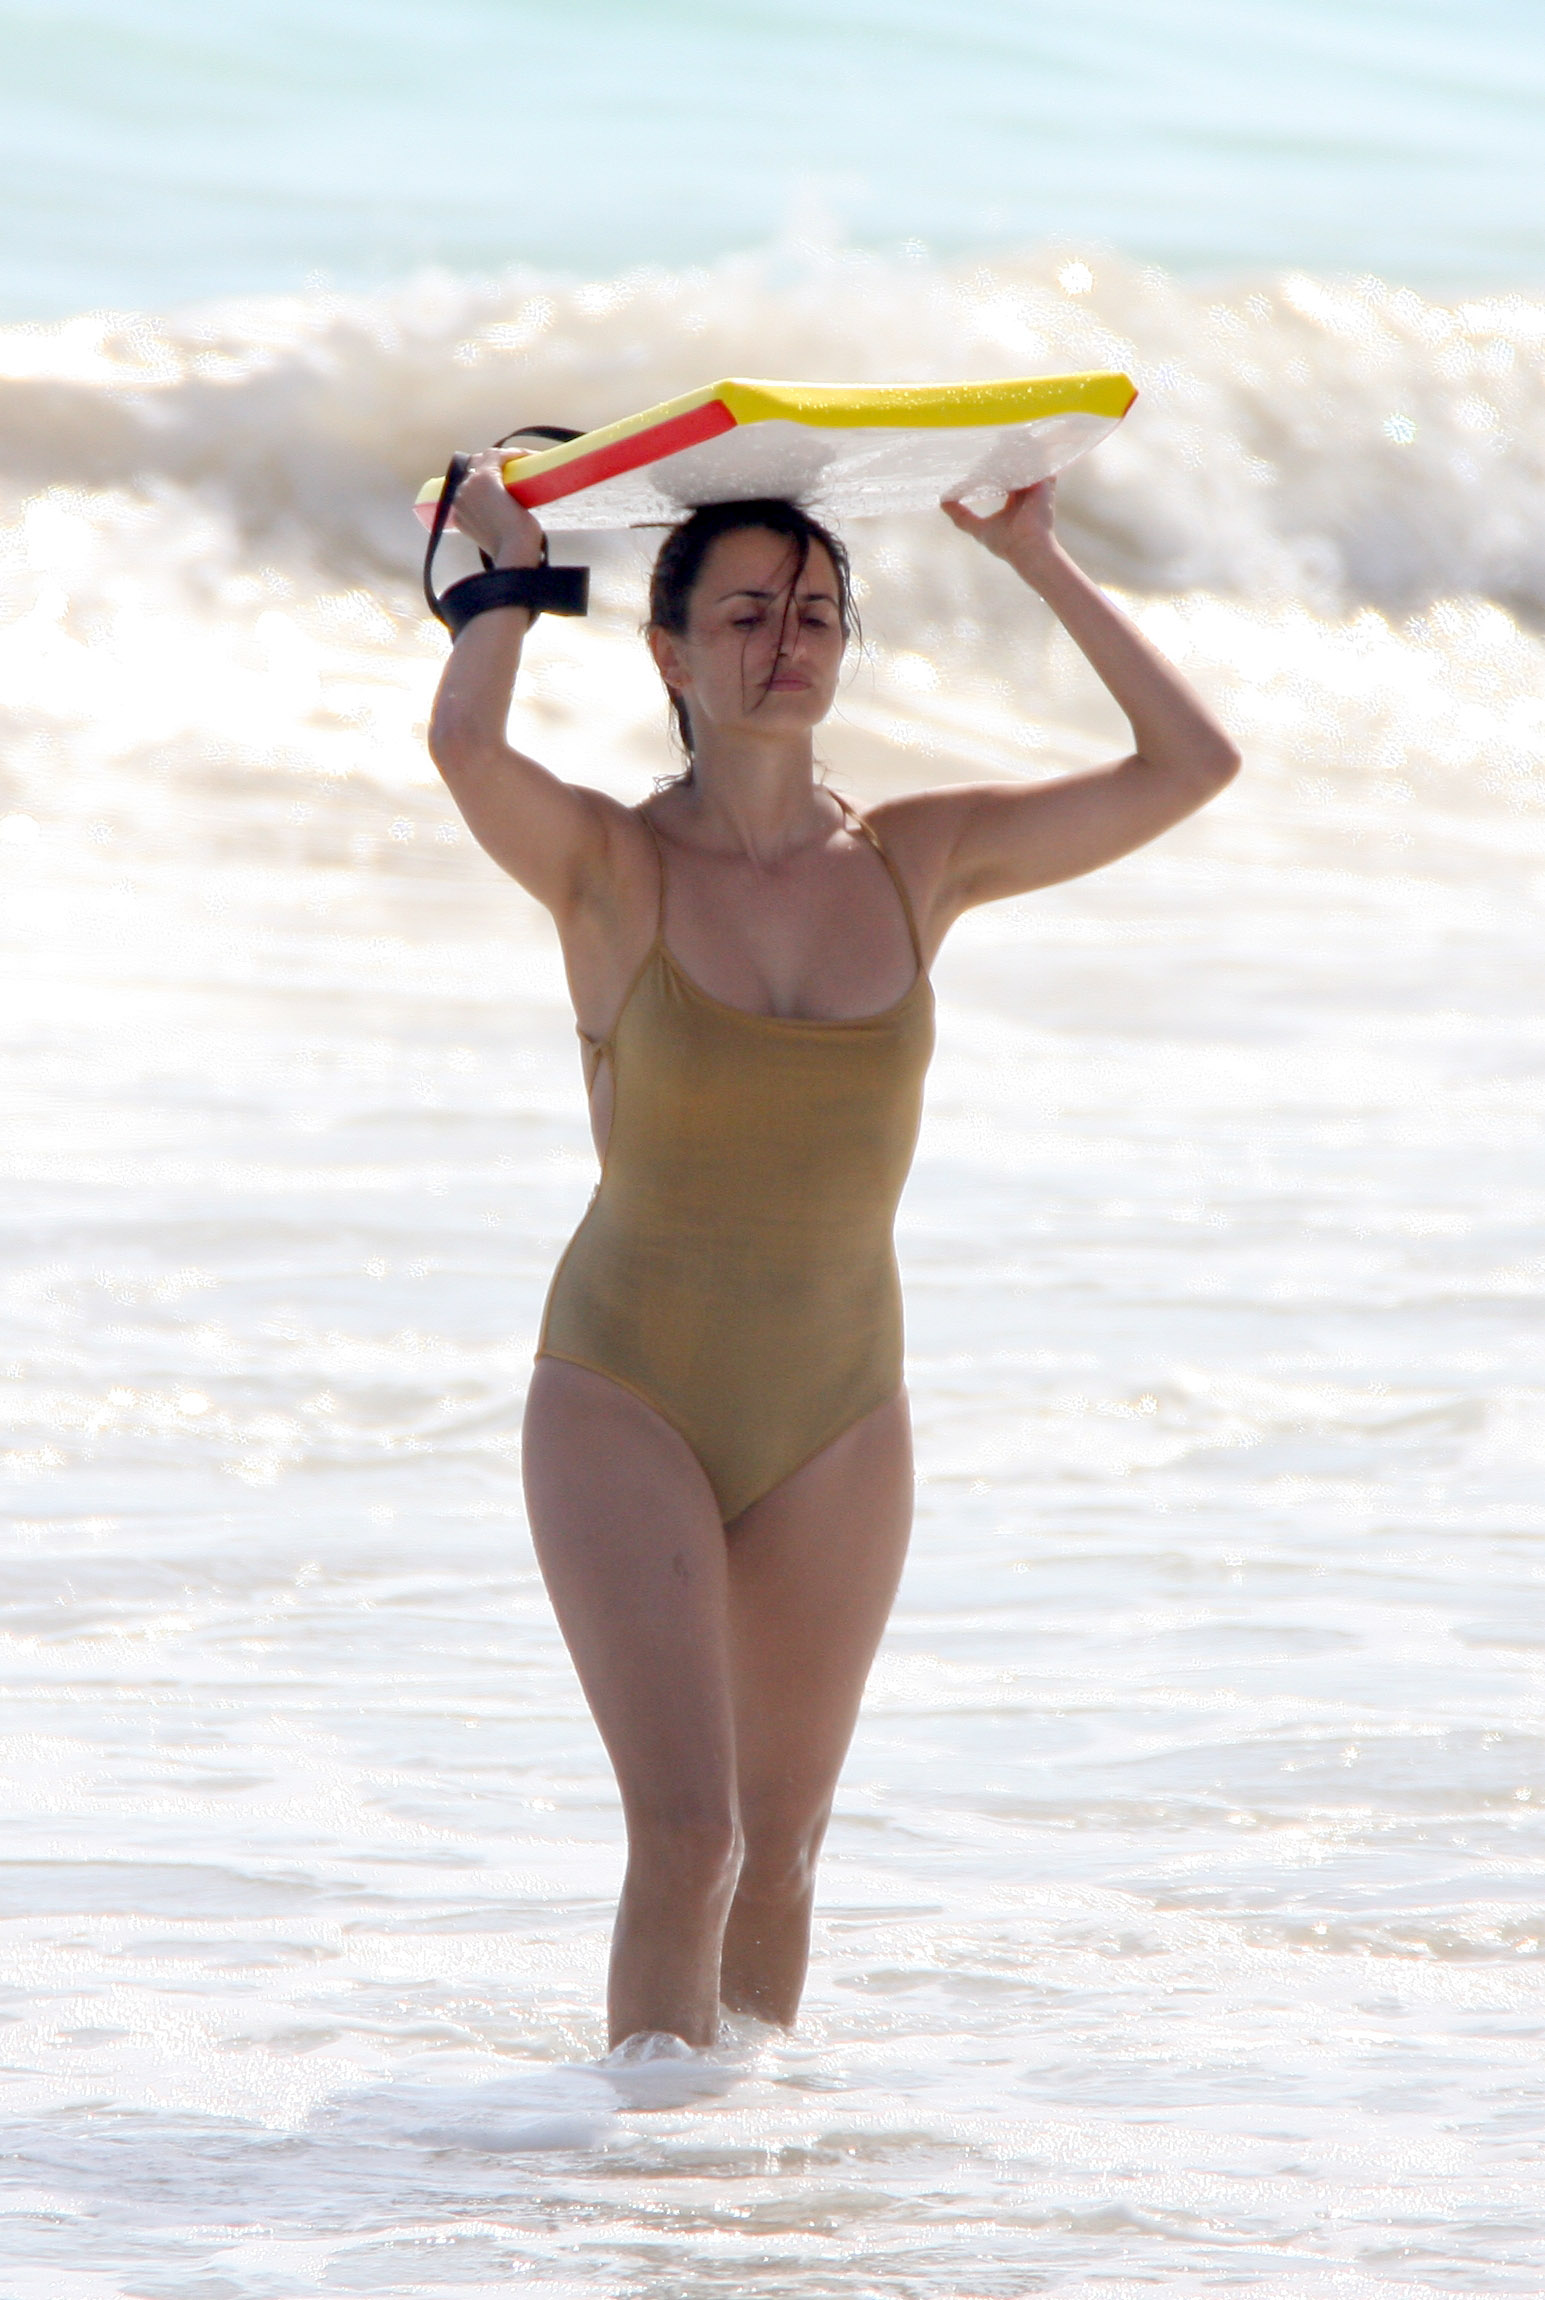 Penélope Cruz hit the waves in a barely there swimsuit while vacationing in St. Barts in January 2007.